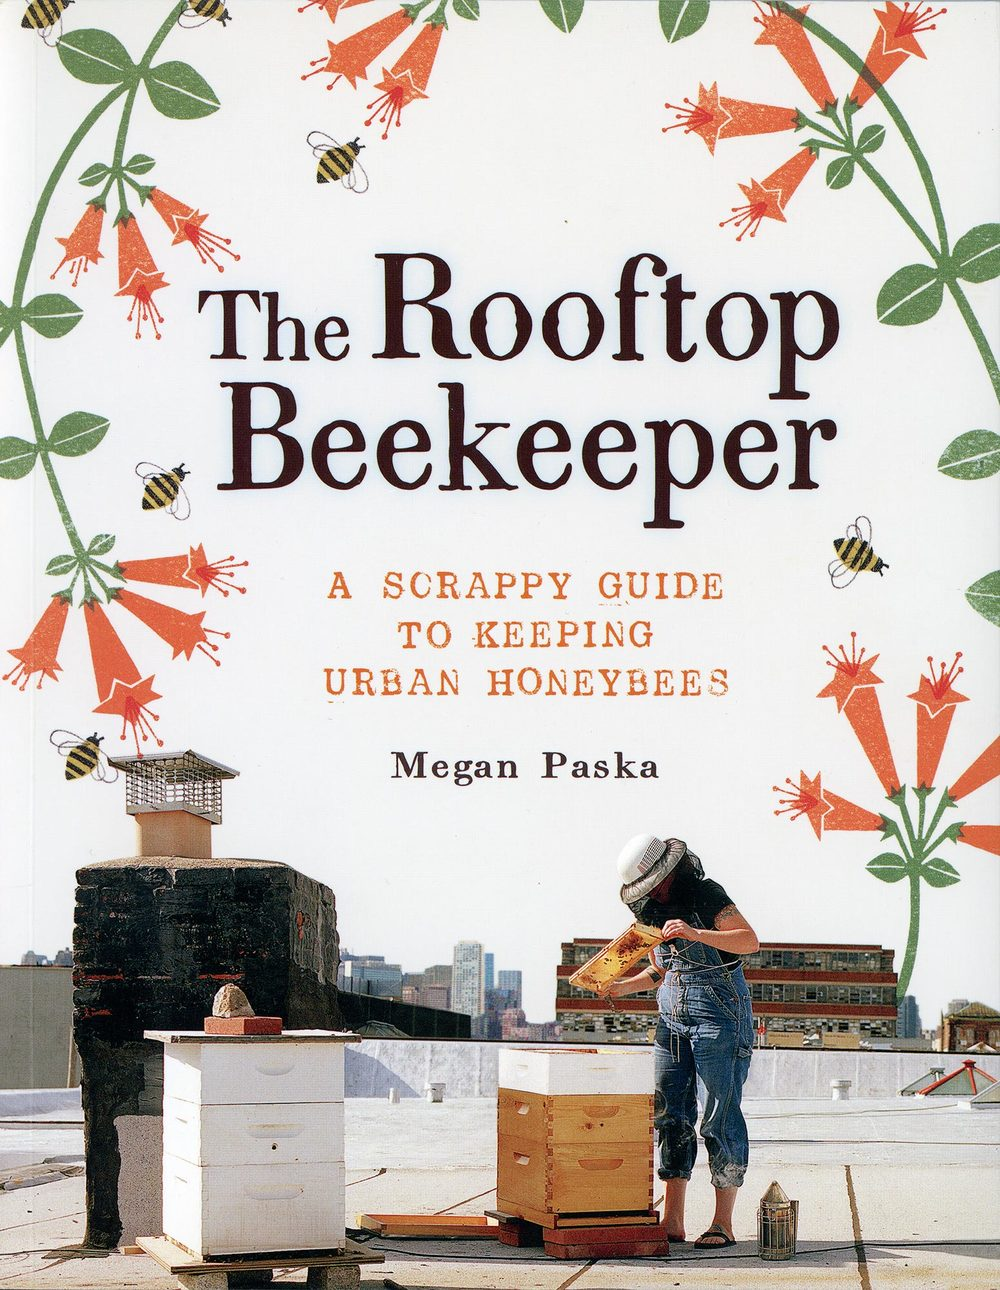 'The Rooftop Beekeeper'